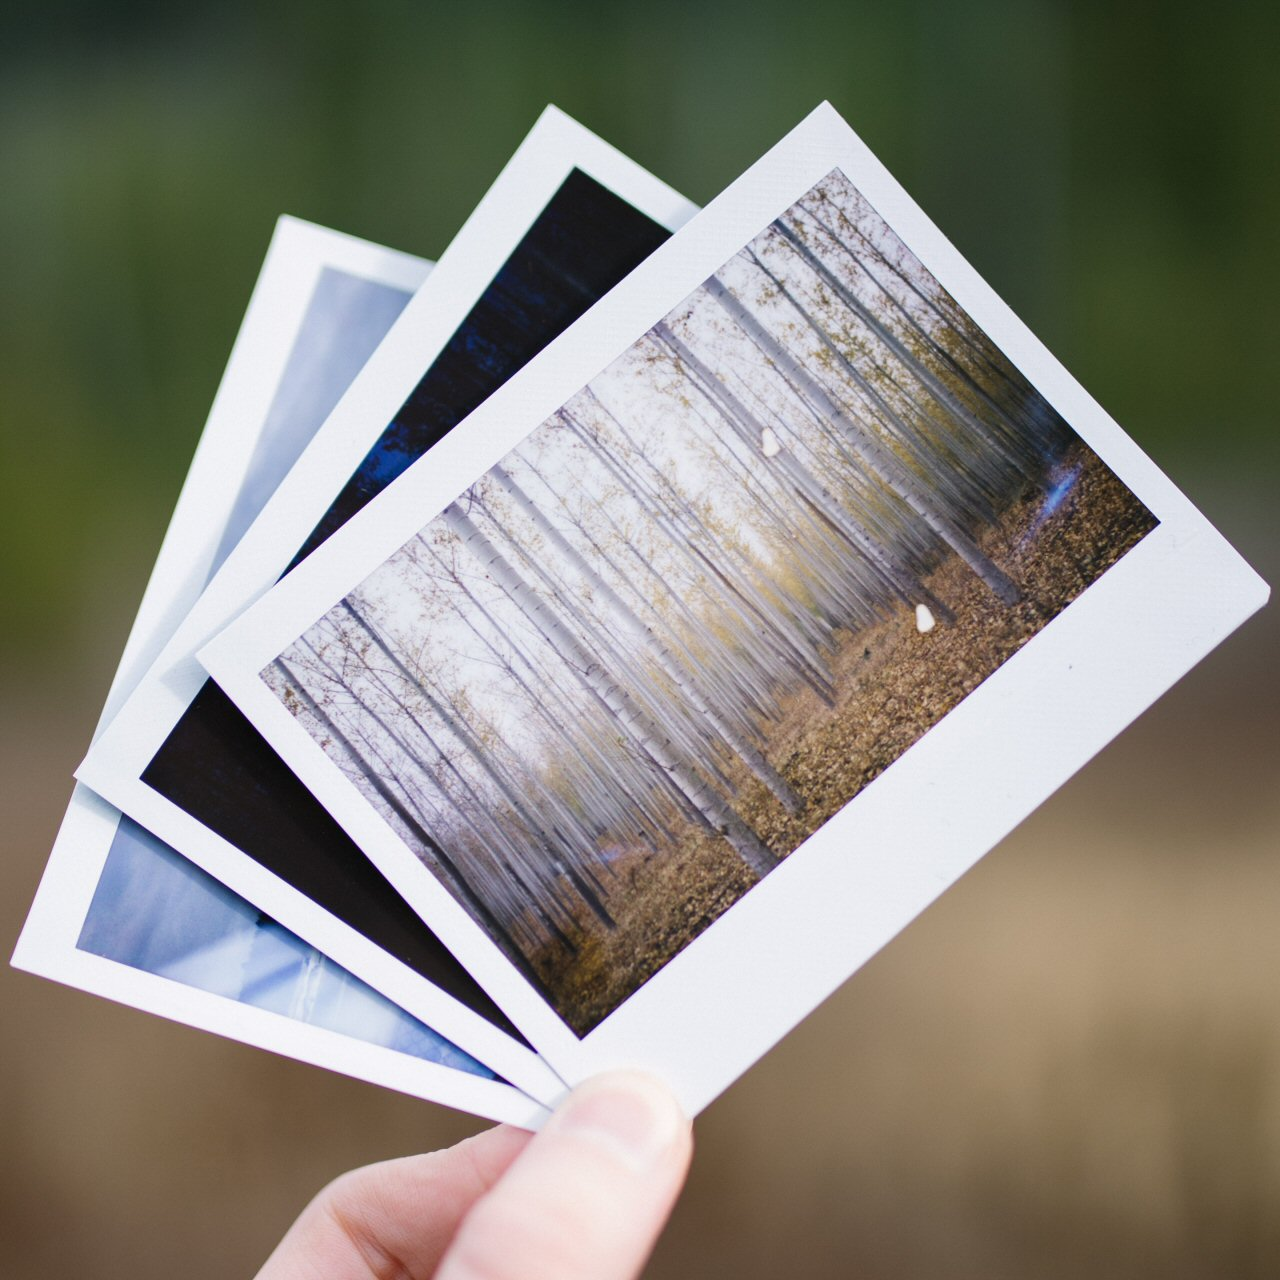 Image Processing & Photography